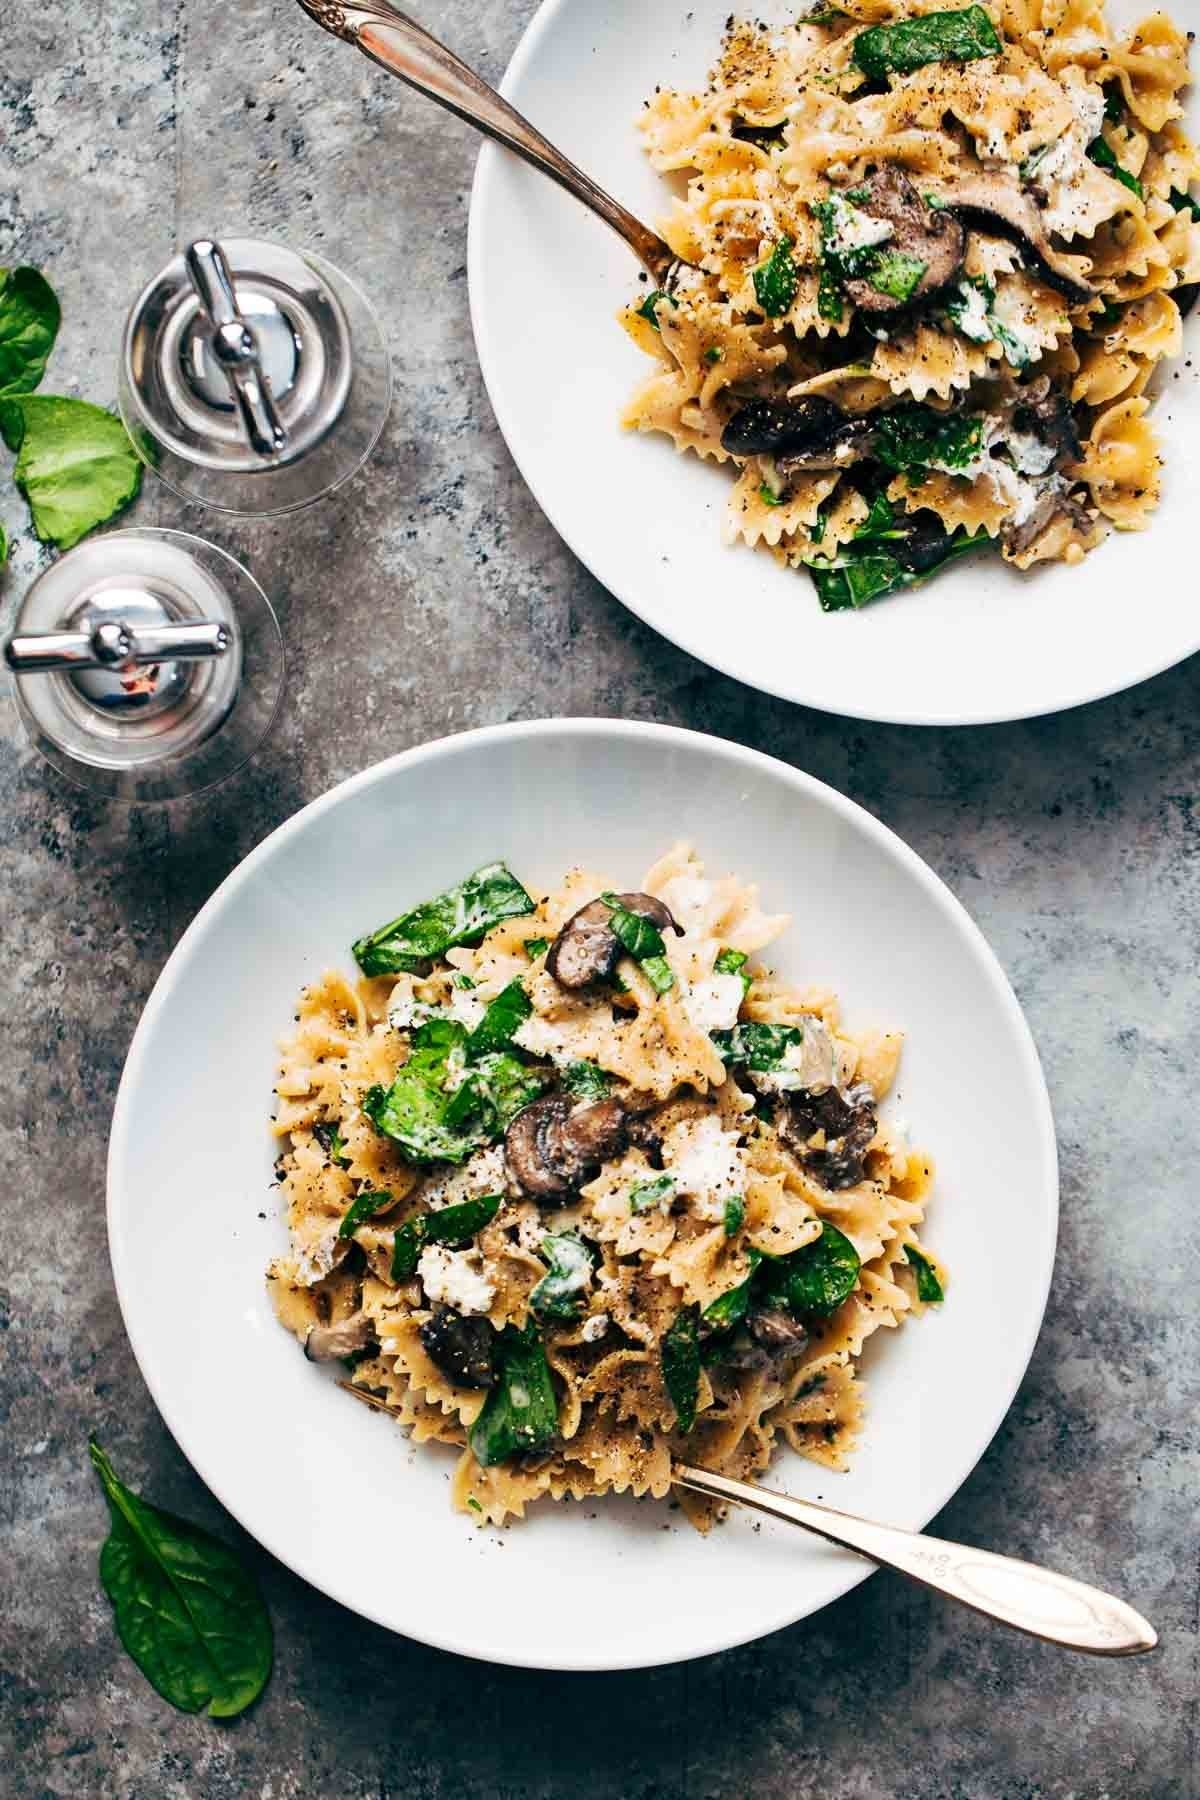 10 Unique Light Dinner Ideas For Two date night mushroom pasta with goat cheese recipe pinch of yum 1